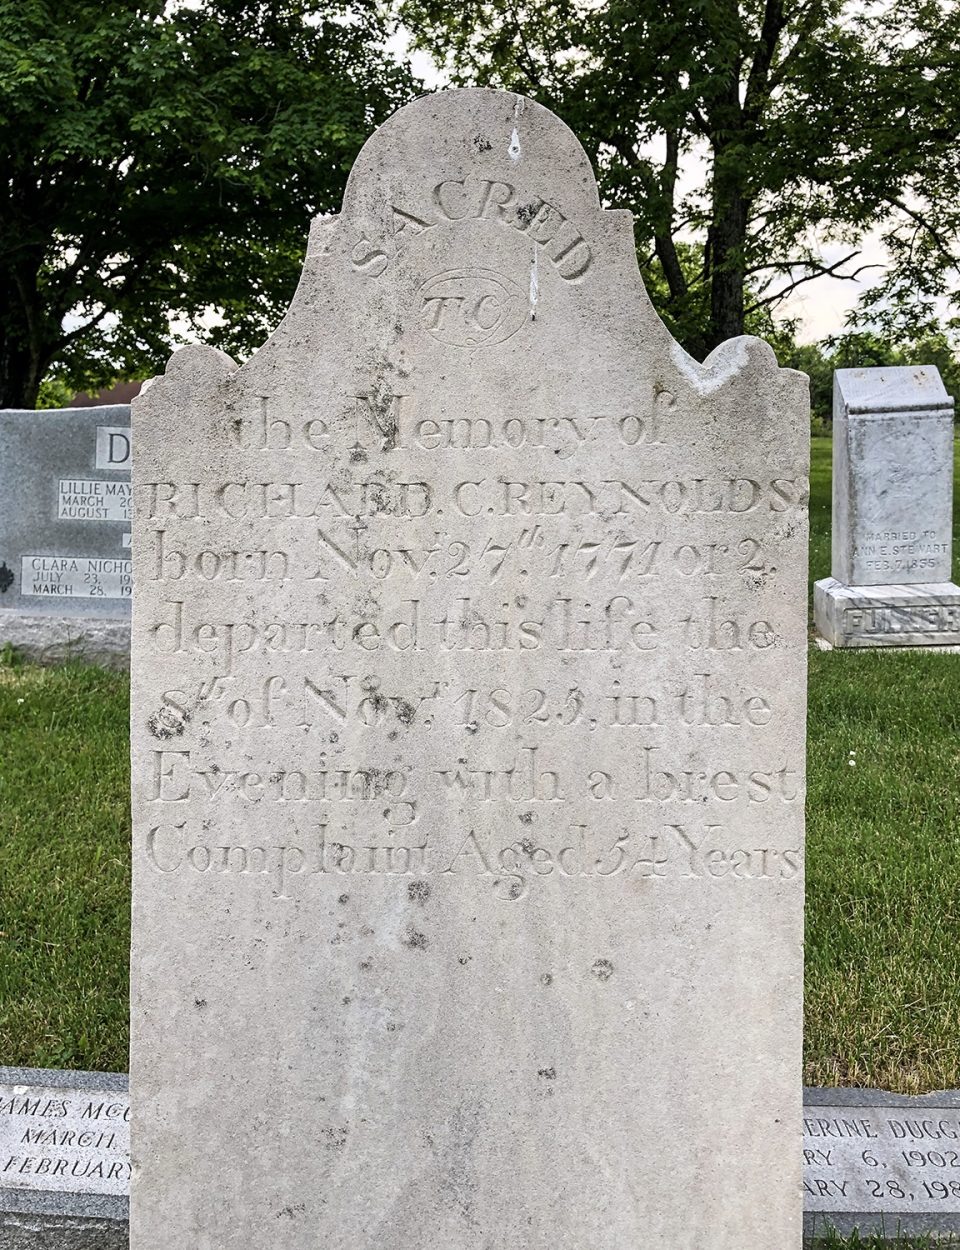 """Tombstone in the Riggs Crossroads Cemetery in Williamson County, Tennessee: """"Sacred to the memory of Richard C. Reynolds, born Nov. 27th, 1771 or 2. Departed this life the 8th of Nov. 1825, in the Evening with a brest Complaint. Aged 54 years."""""""